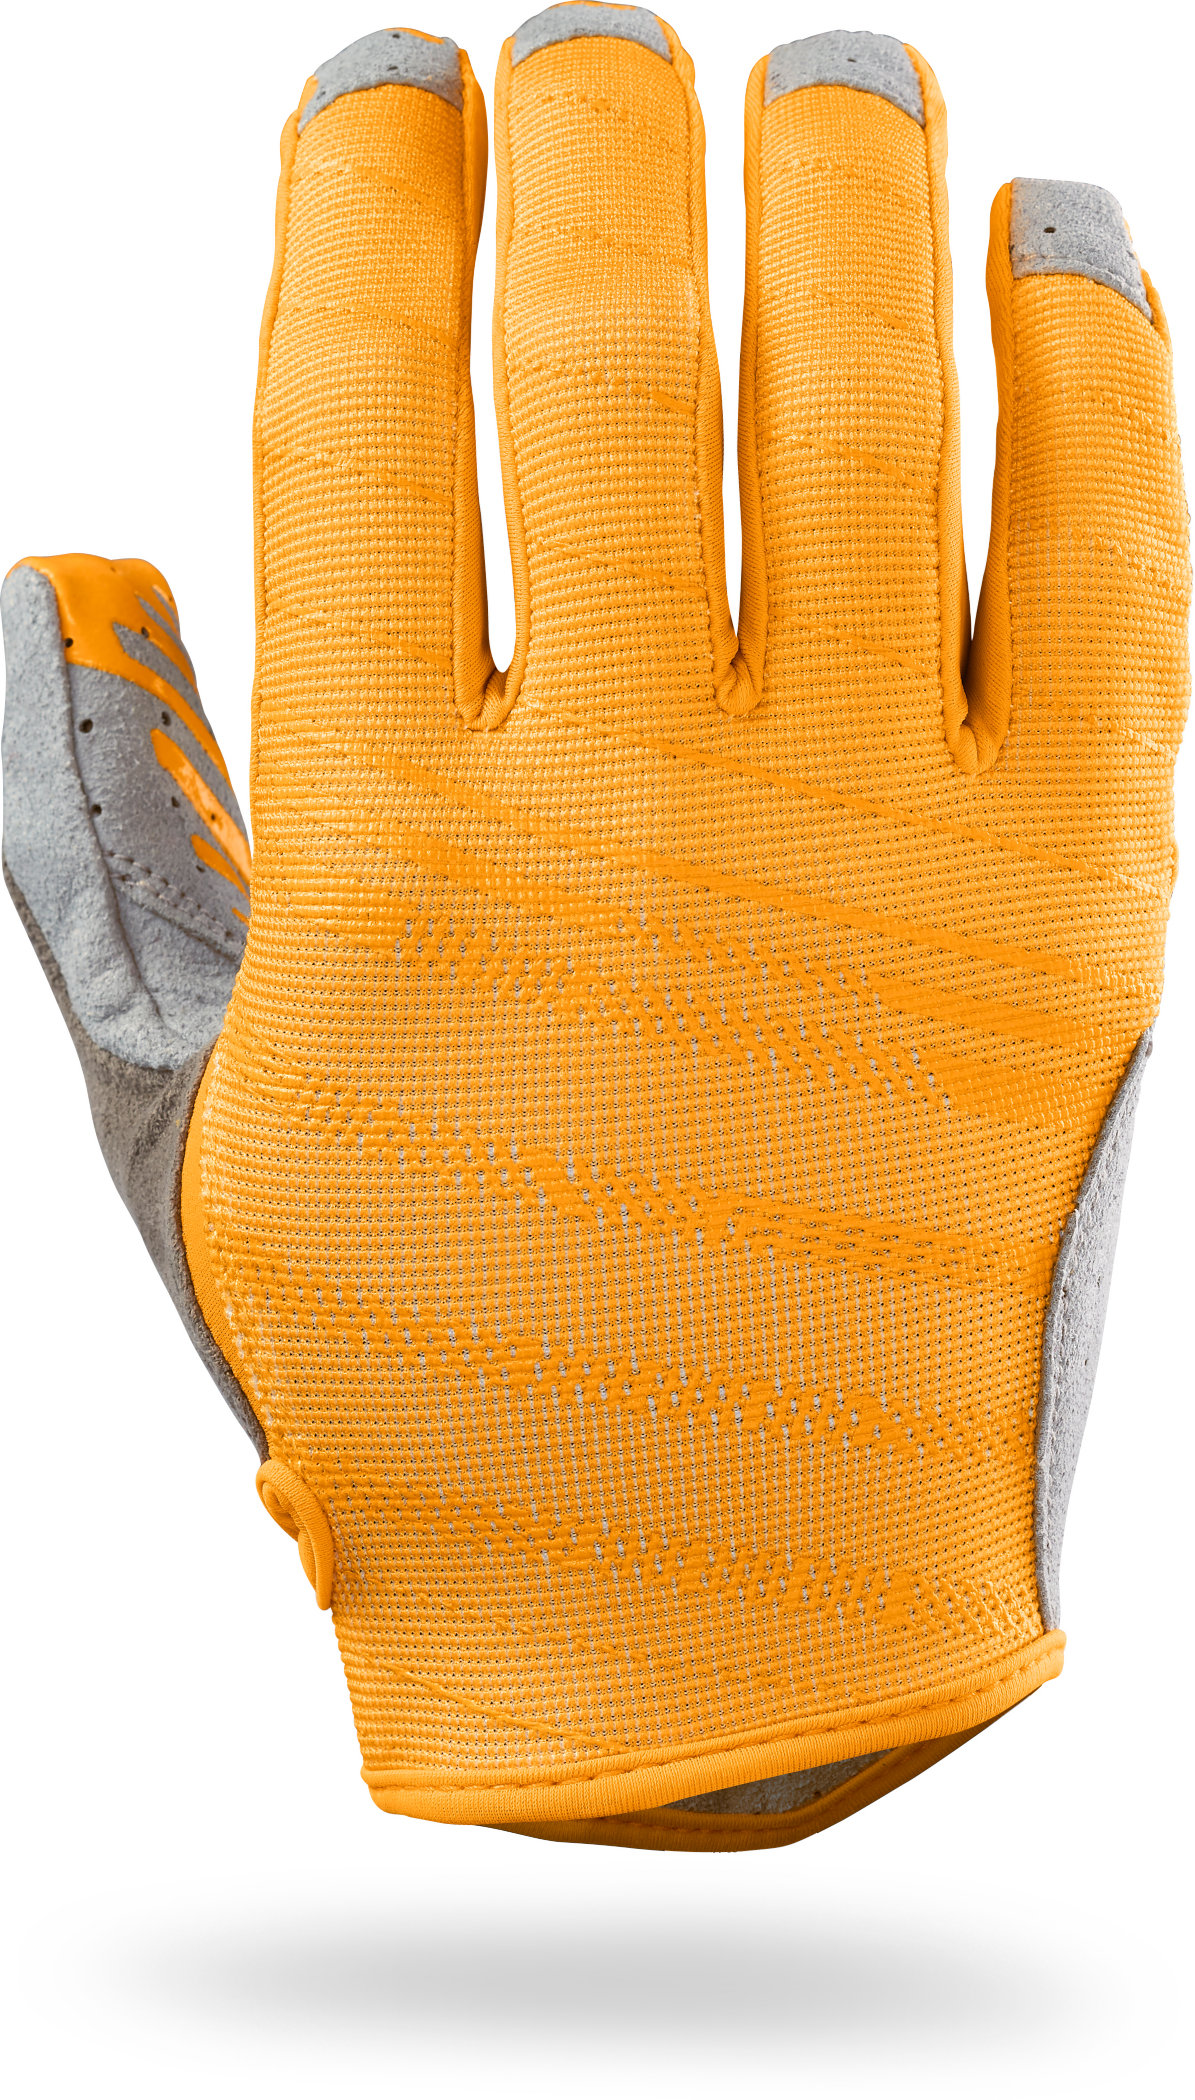 SPECIALIZED LODOWN GLOVE LF GLDORG XL - Bikedreams & Dustbikes